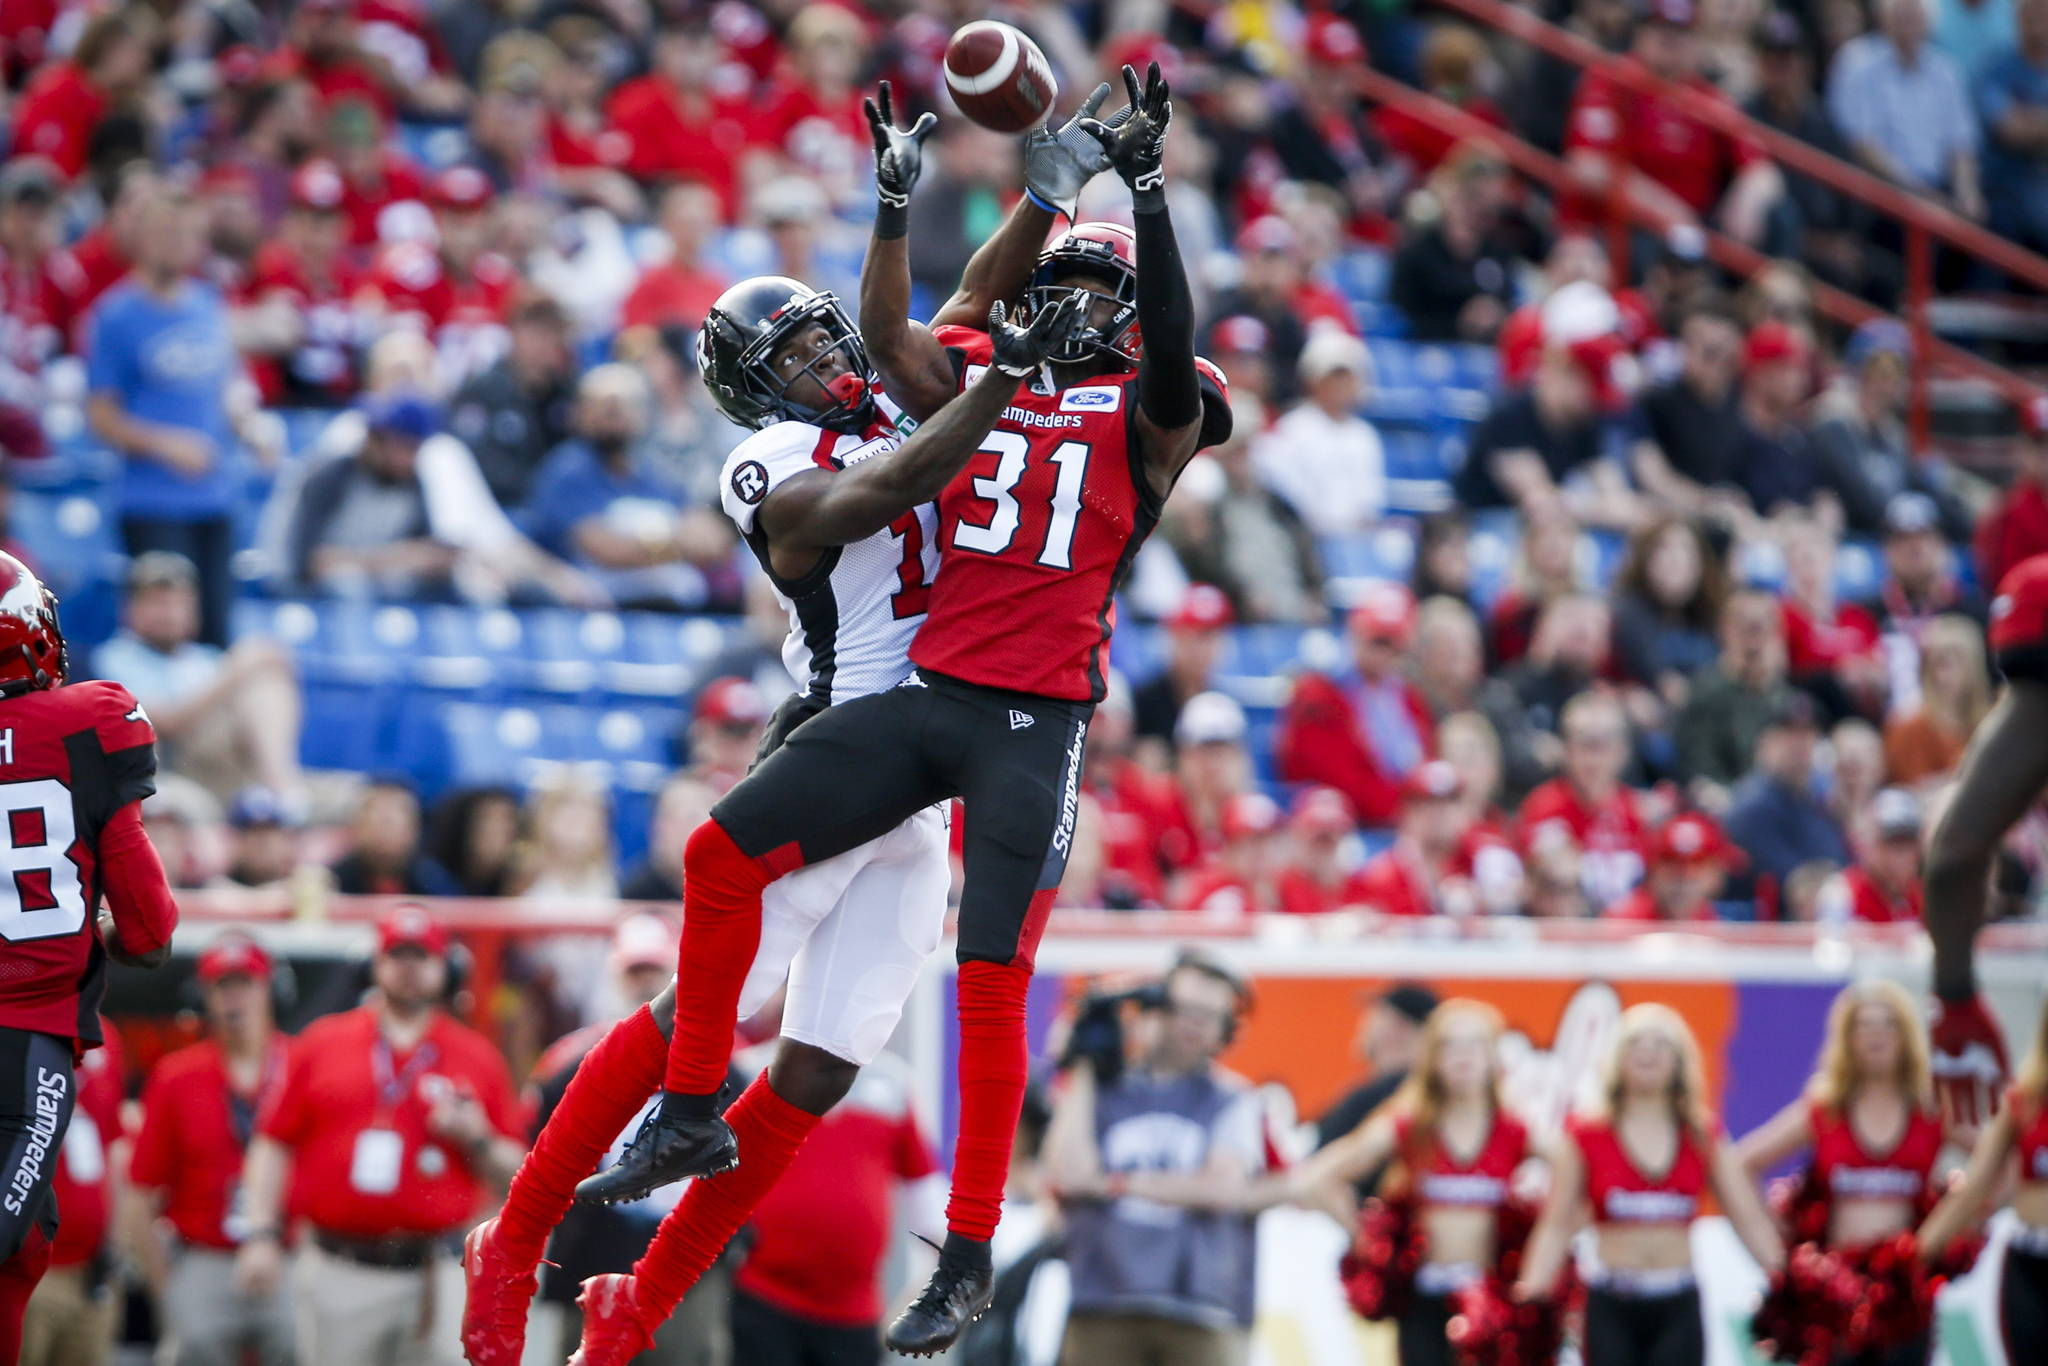 Ottawa Redblacks' Dominique Rhymes, left, looks on as Calgary Stampeders' Tre Roberson, catches a pass meant for him during first half CFL football action in Calgary, Saturday, June 15, 2019. The B.C. Lions have signed free-agent wide receiver Rhymes to a one-year contract.THE CANADIAN PRESS/Jeff McIntosh